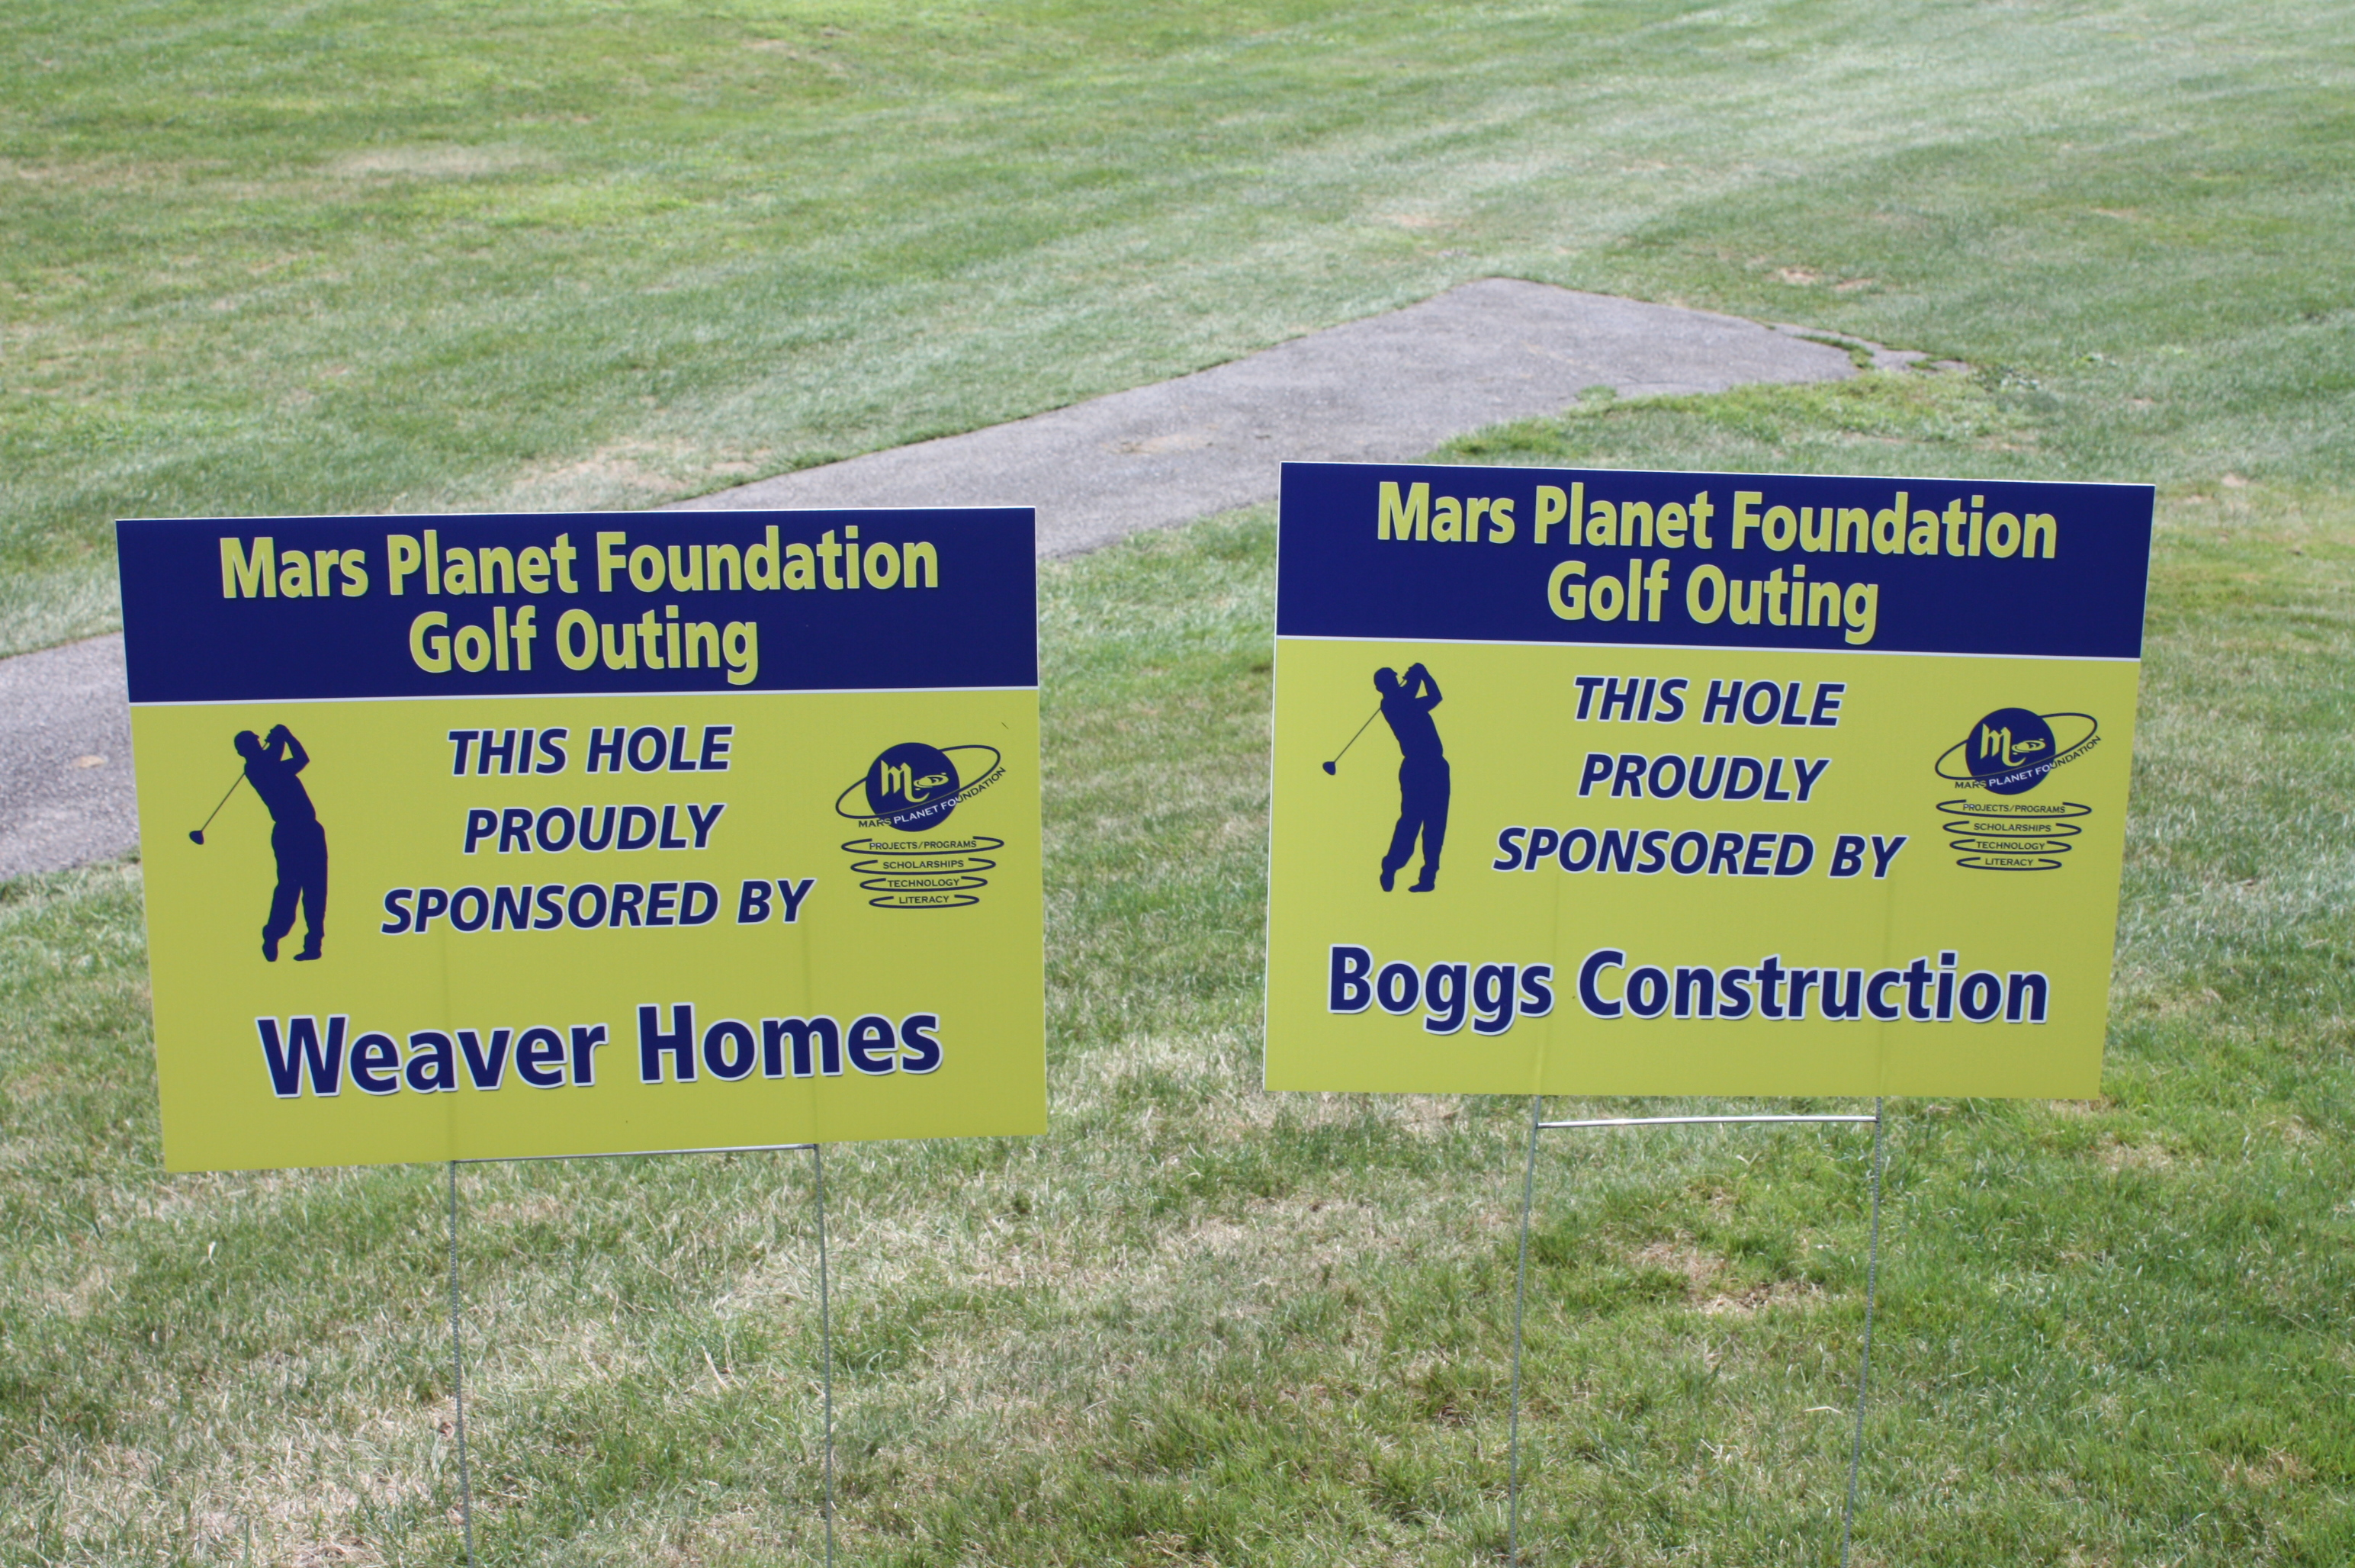 2019 Mars Planet Foundation Golf Outing gallery image #17